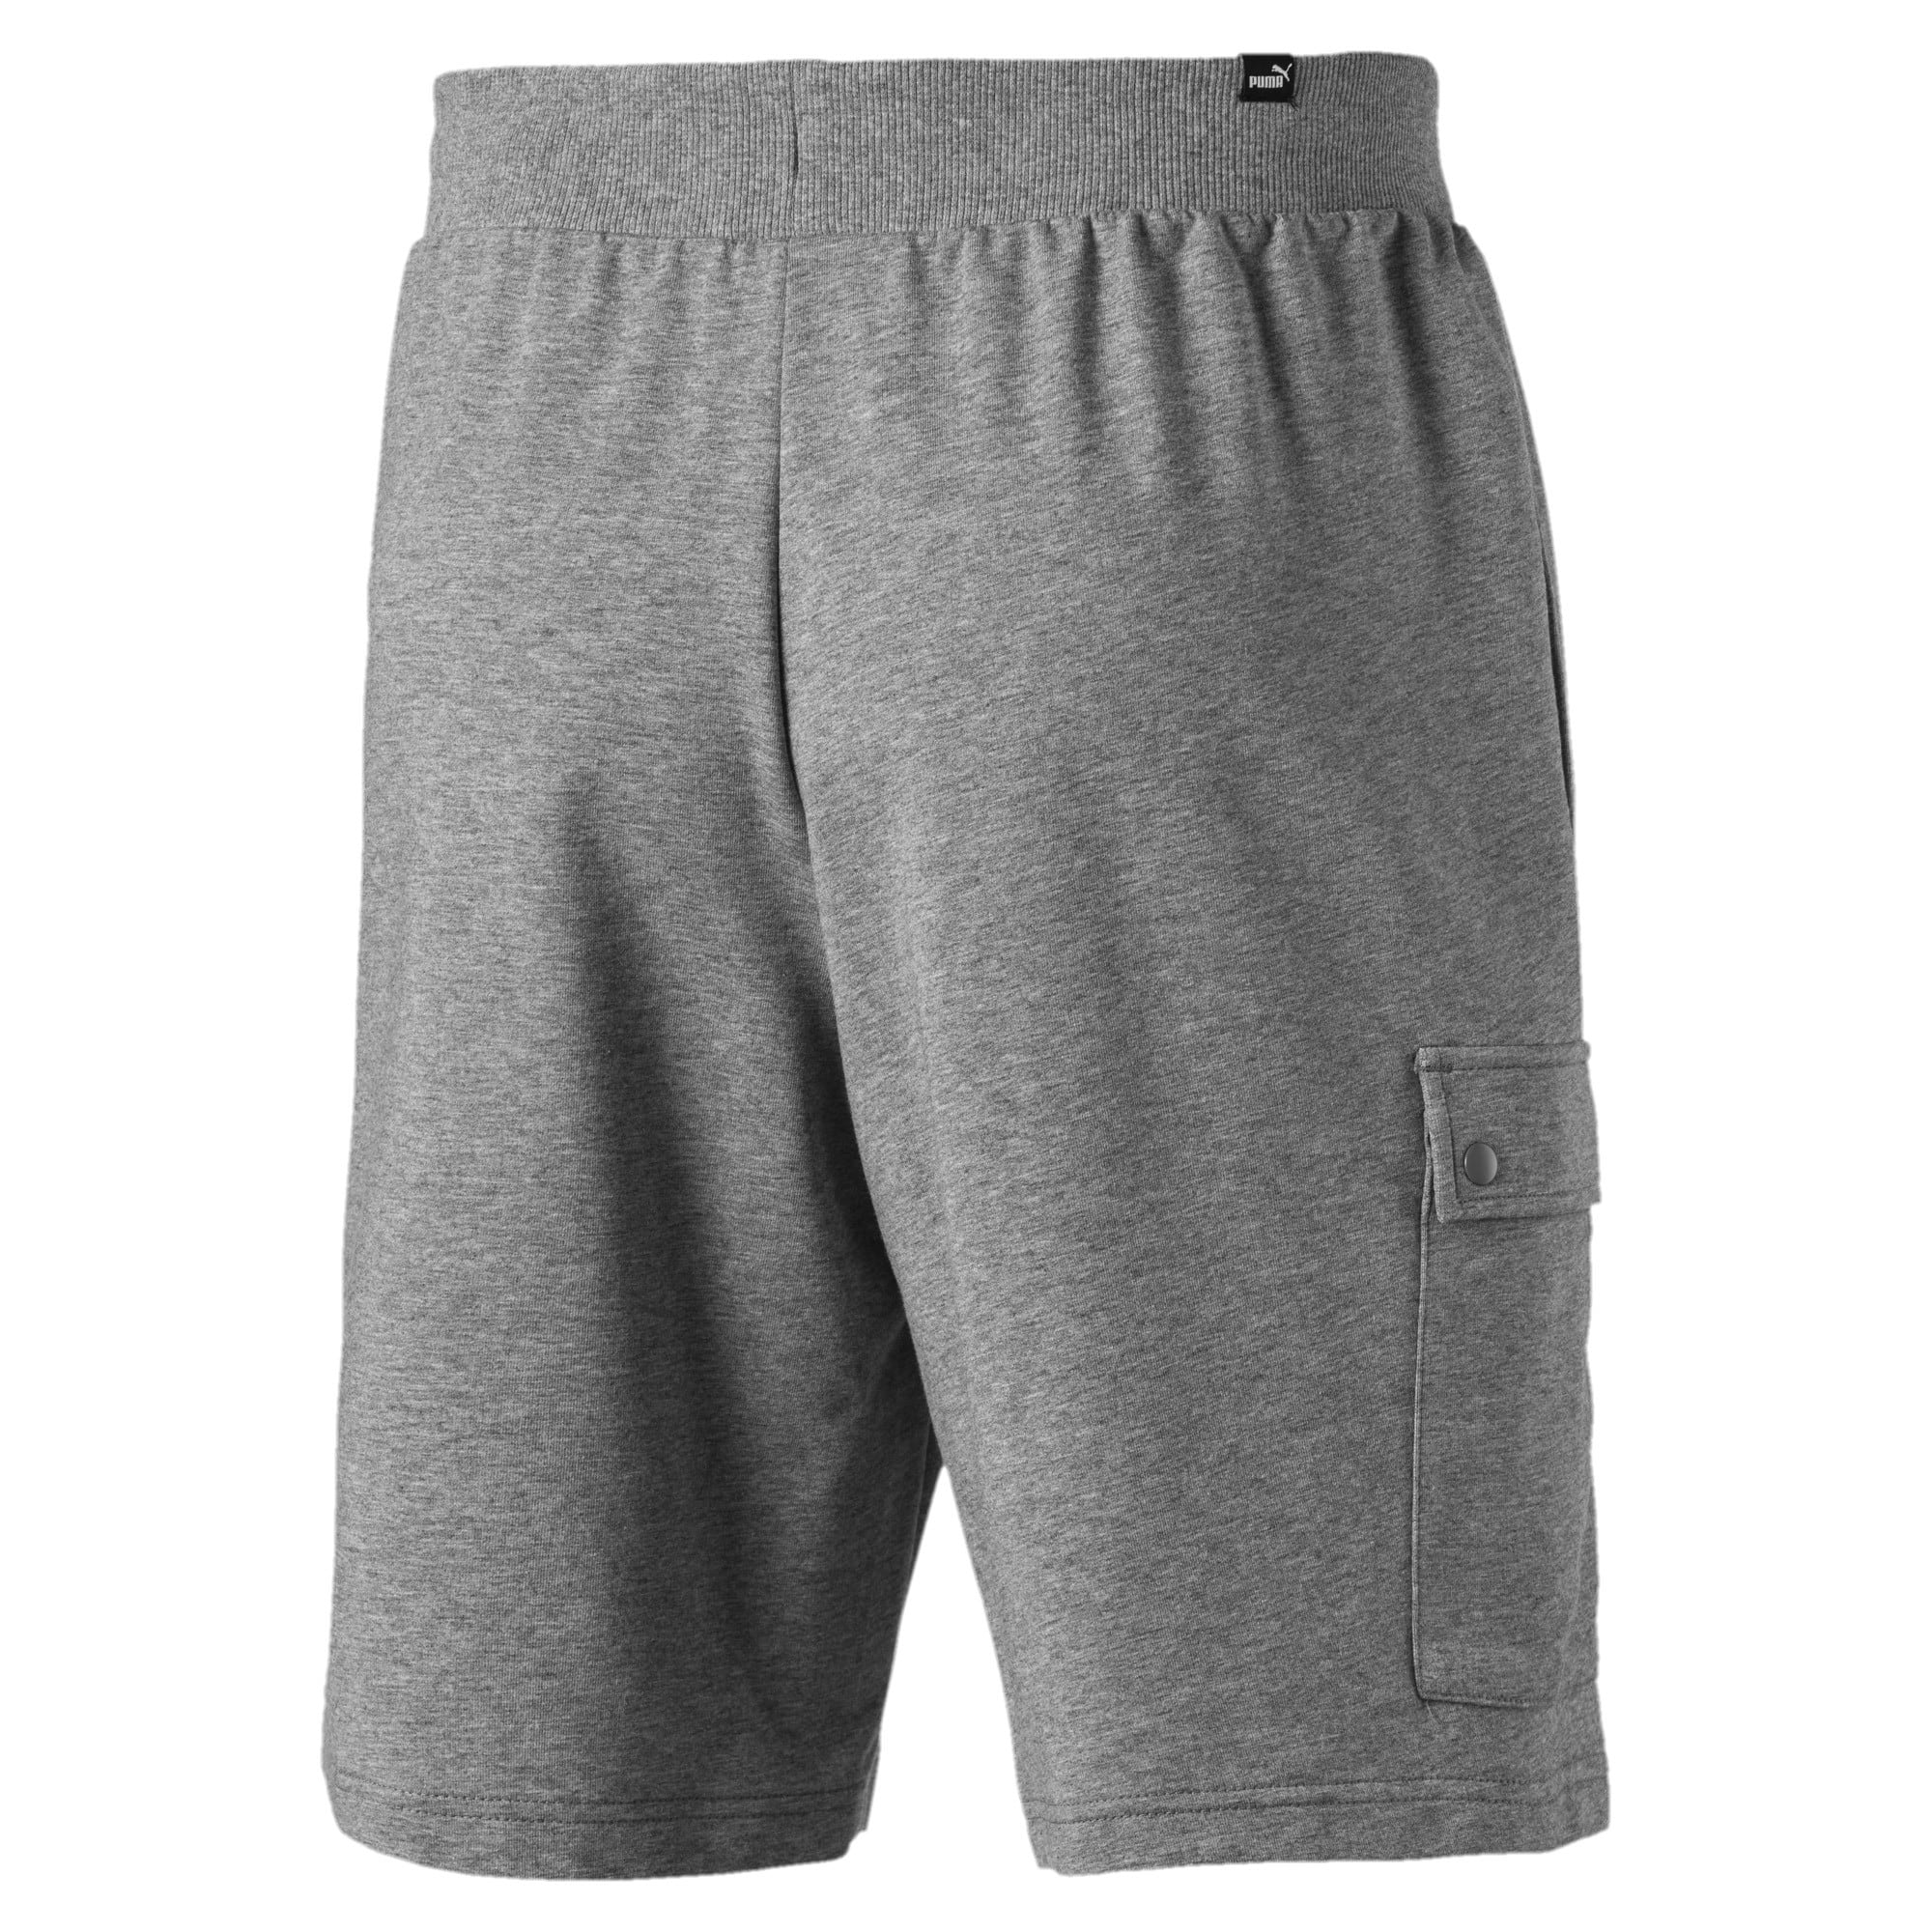 "Thumbnail 3 of Rebel Men's 9"" Shorts, Medium Gray Heather, medium"